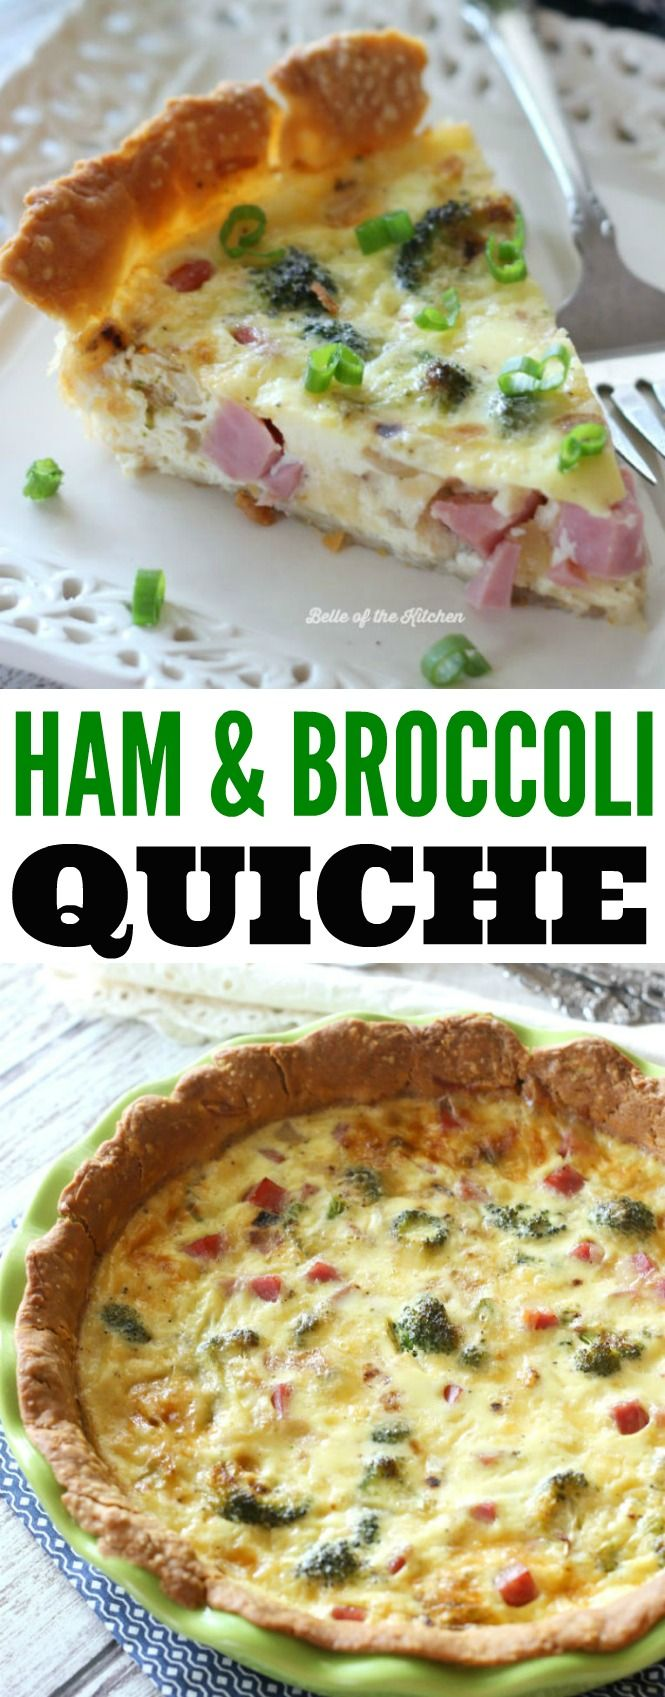 This Ham and Broccoli Quiche is the perfect warm breakfast. Made with creamy and delicious gouda cheese!